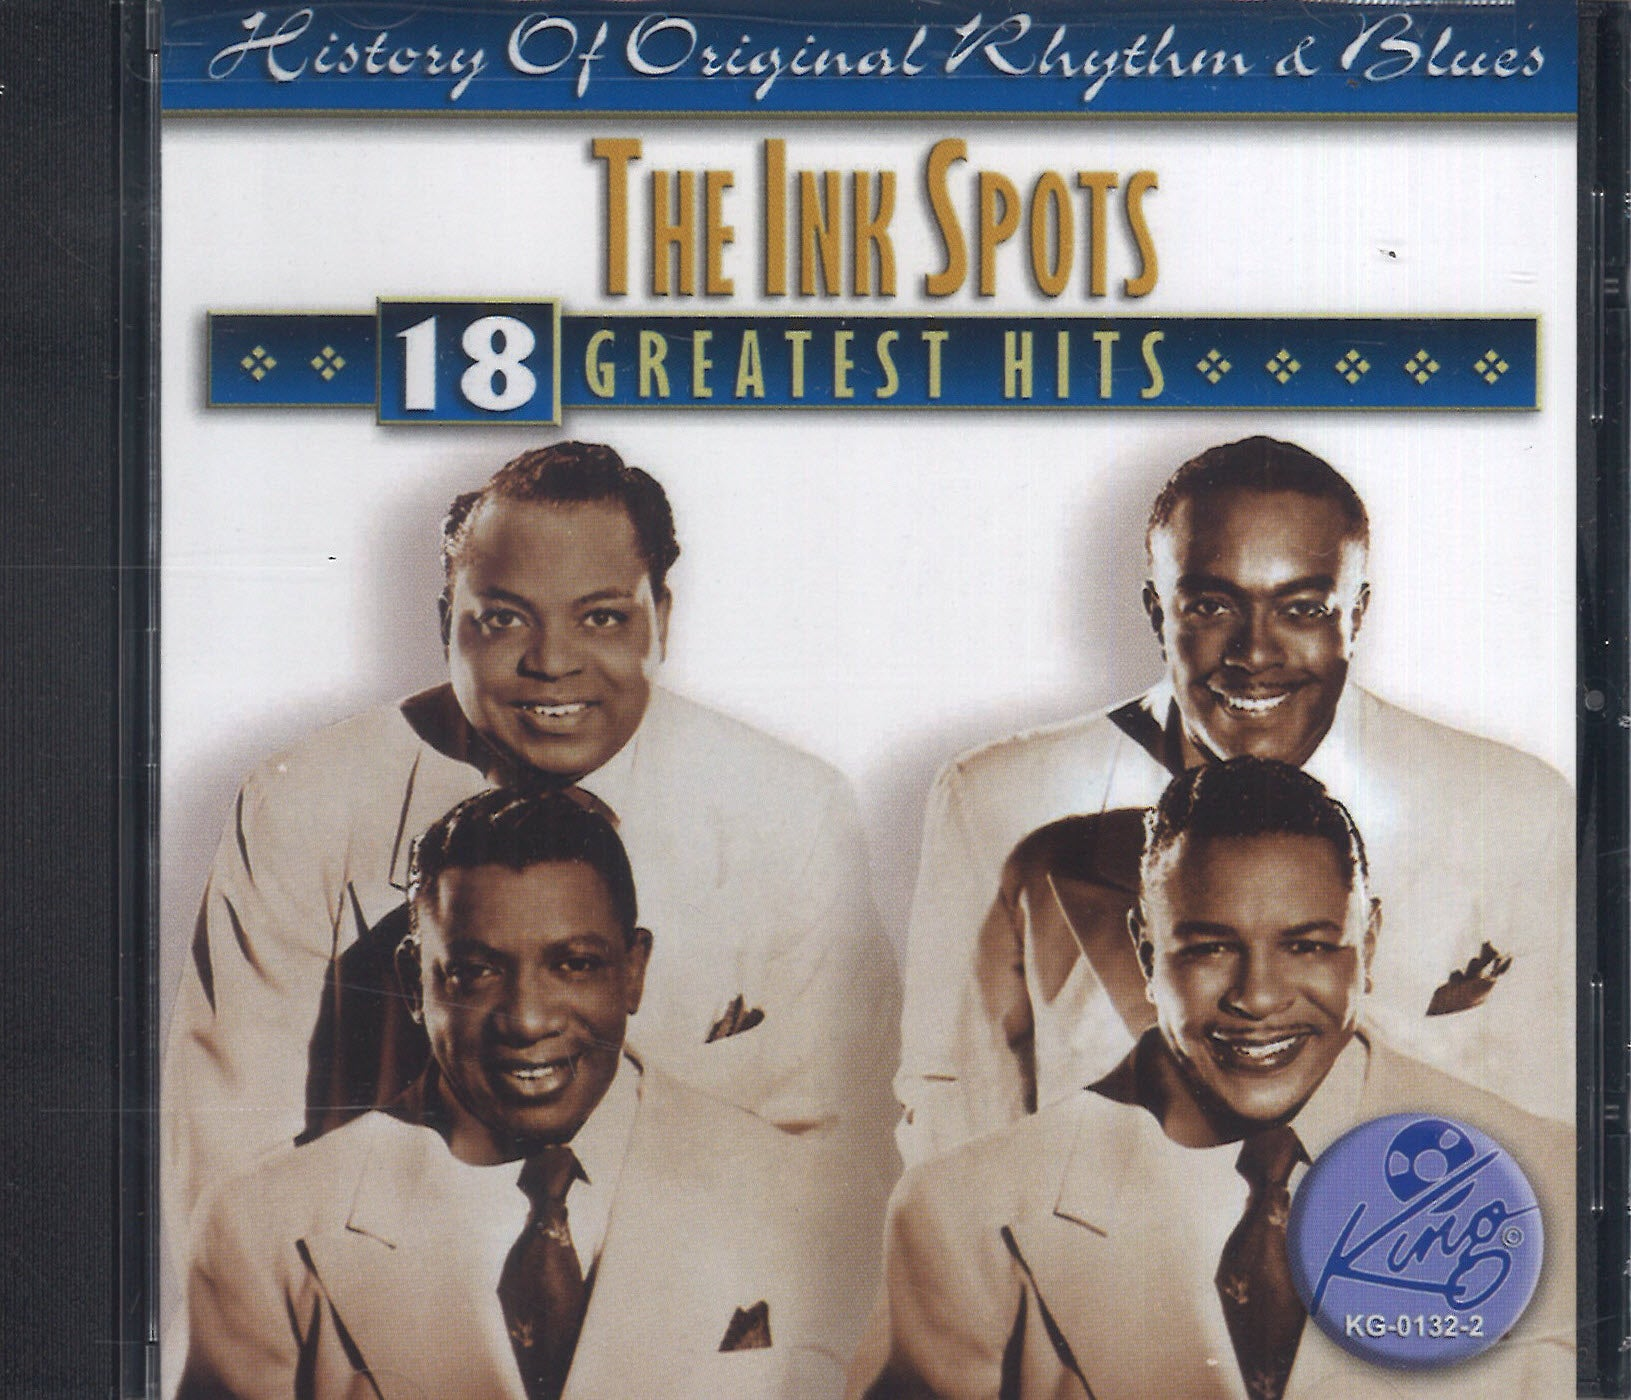 The Ink Spots 18 Greatest Hits